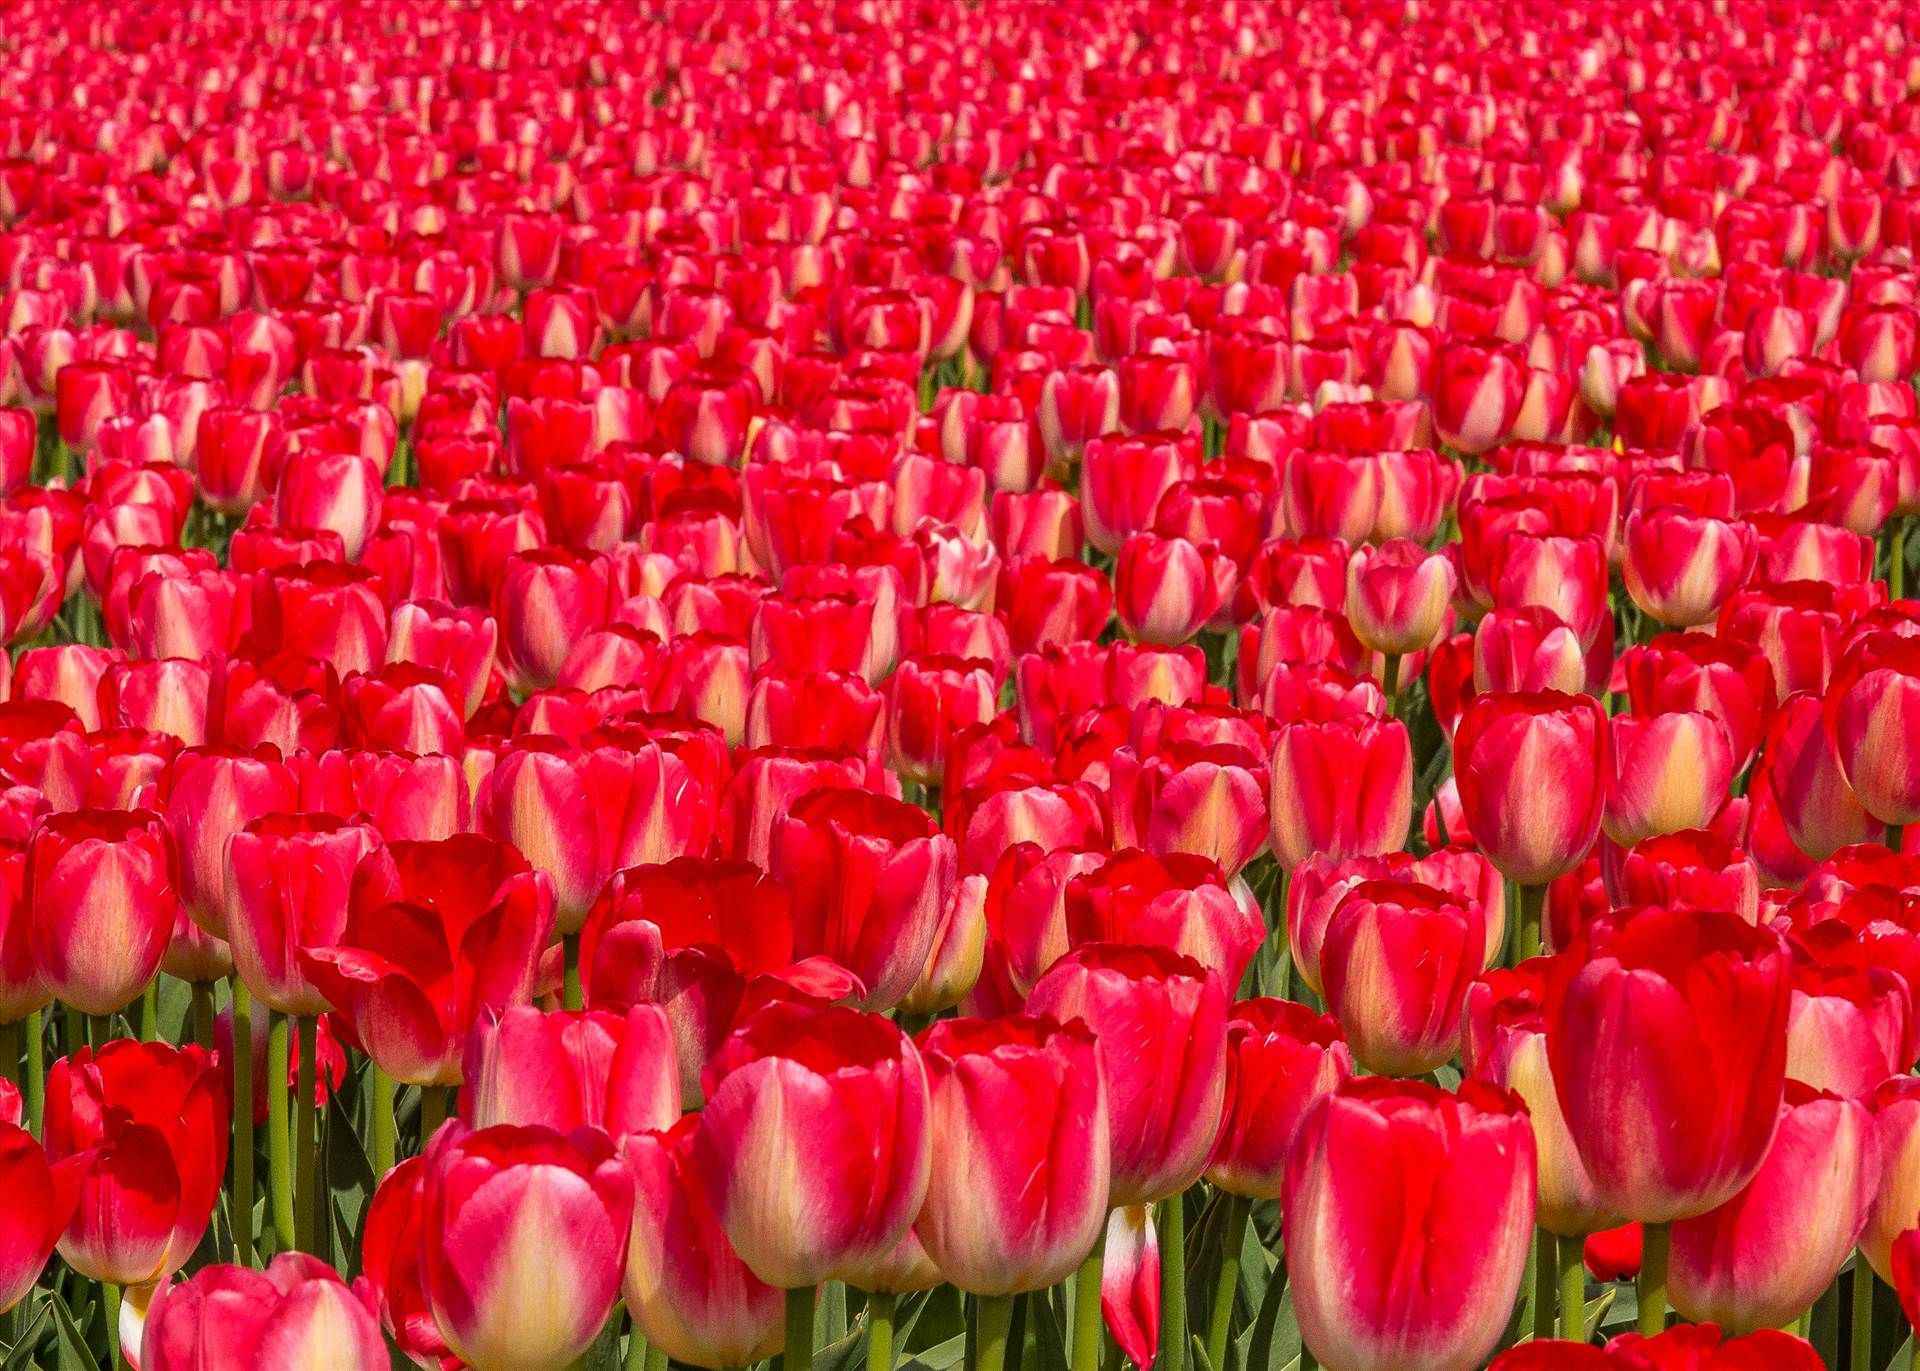 Tulips, Tulips, Tulips - From the 2012 Skagit County Tulip Festival in Washington. by D Scott Smith